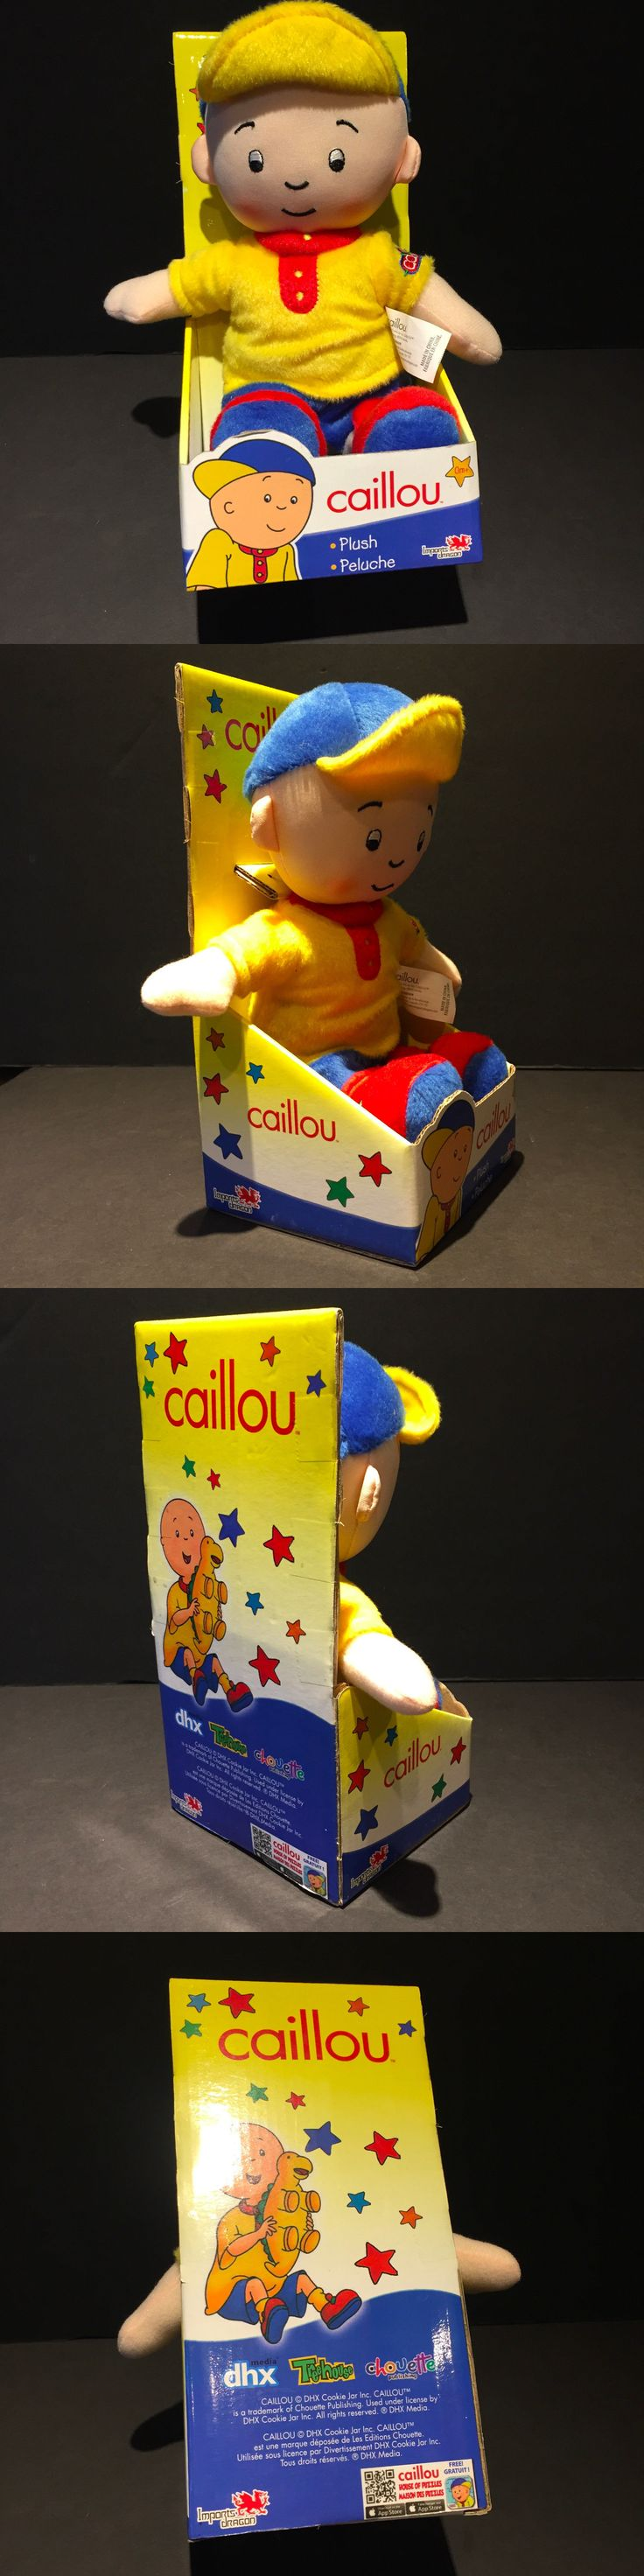 Caillou 20903: Caillou 10 -11 Plush Doll Rare Nos New Misp Soft Face Imports Dragon -> BUY IT NOW ONLY: $99.99 on eBay!